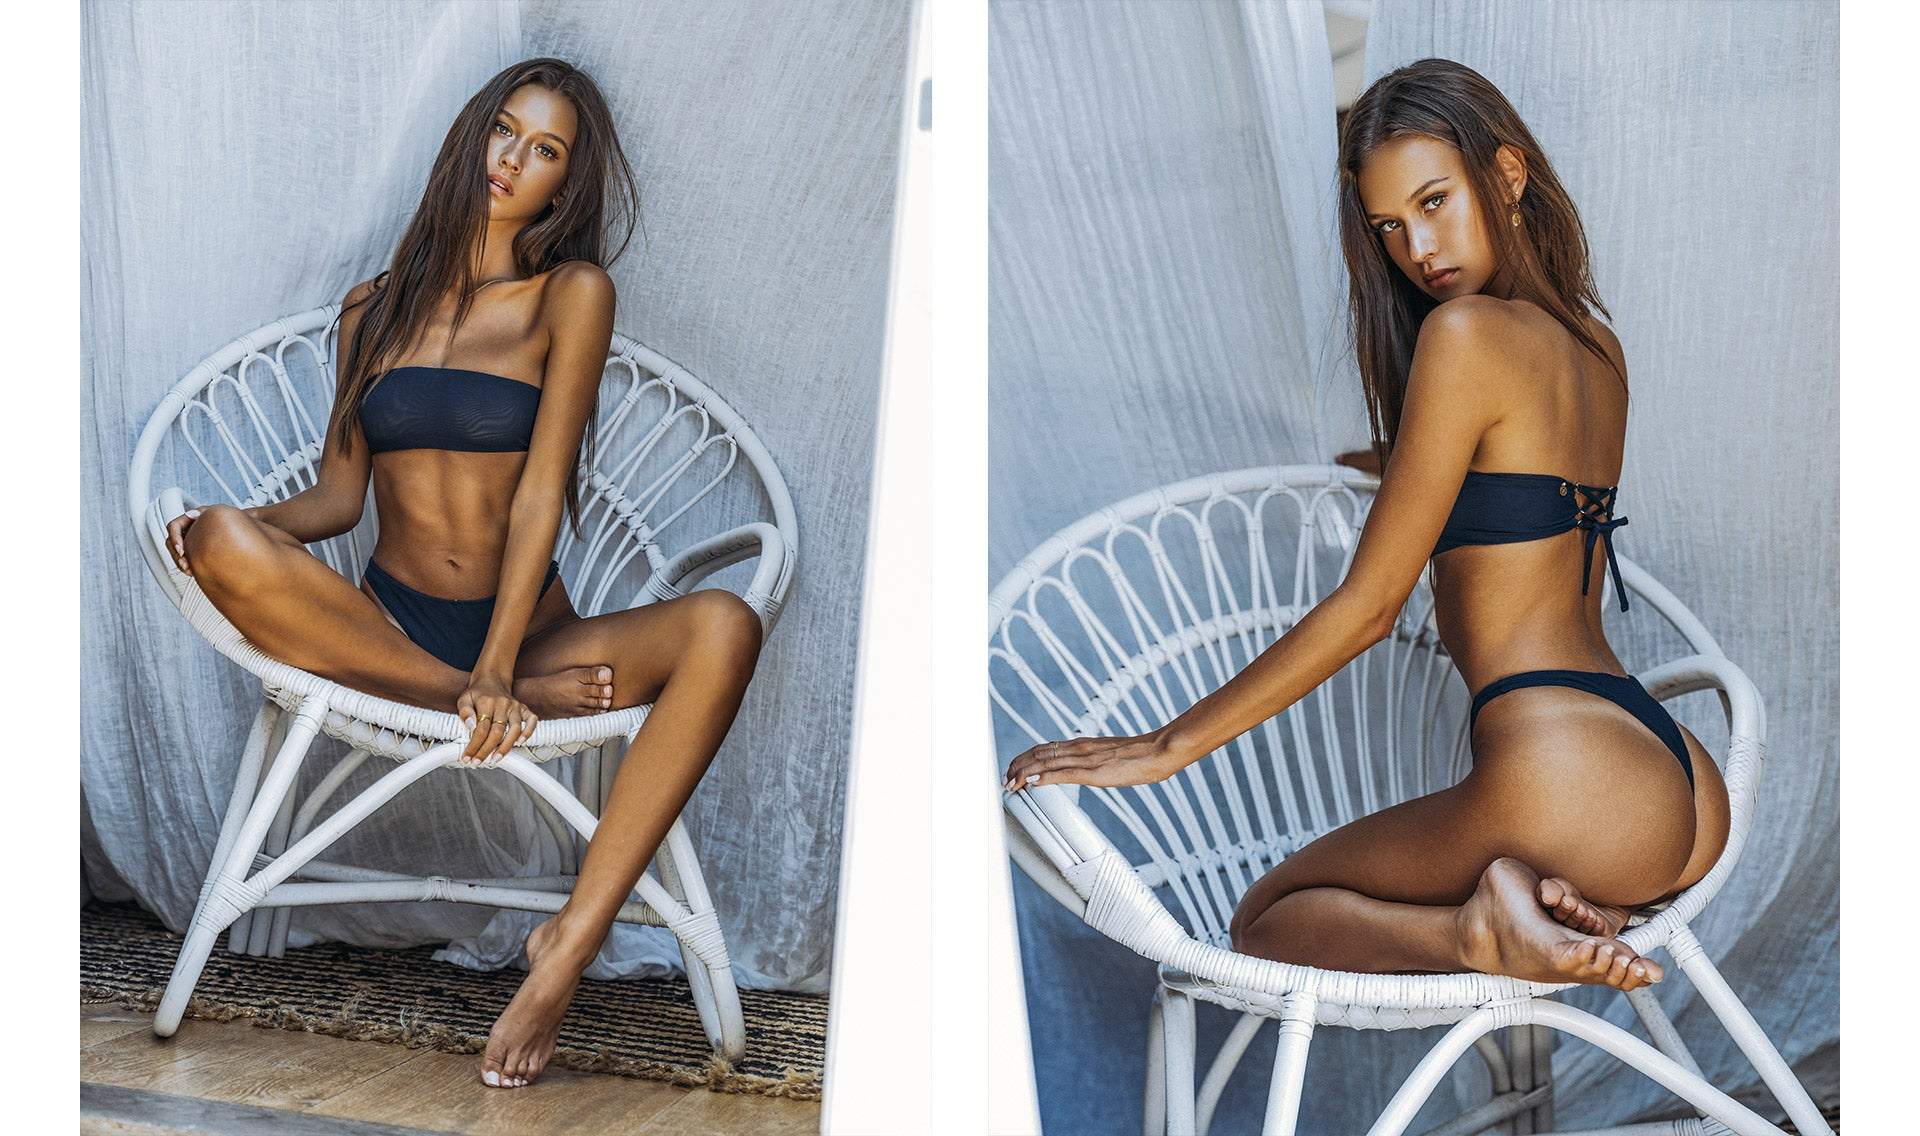 Isabelle Mathers wearing the For You Deep Blue Bandeau Set